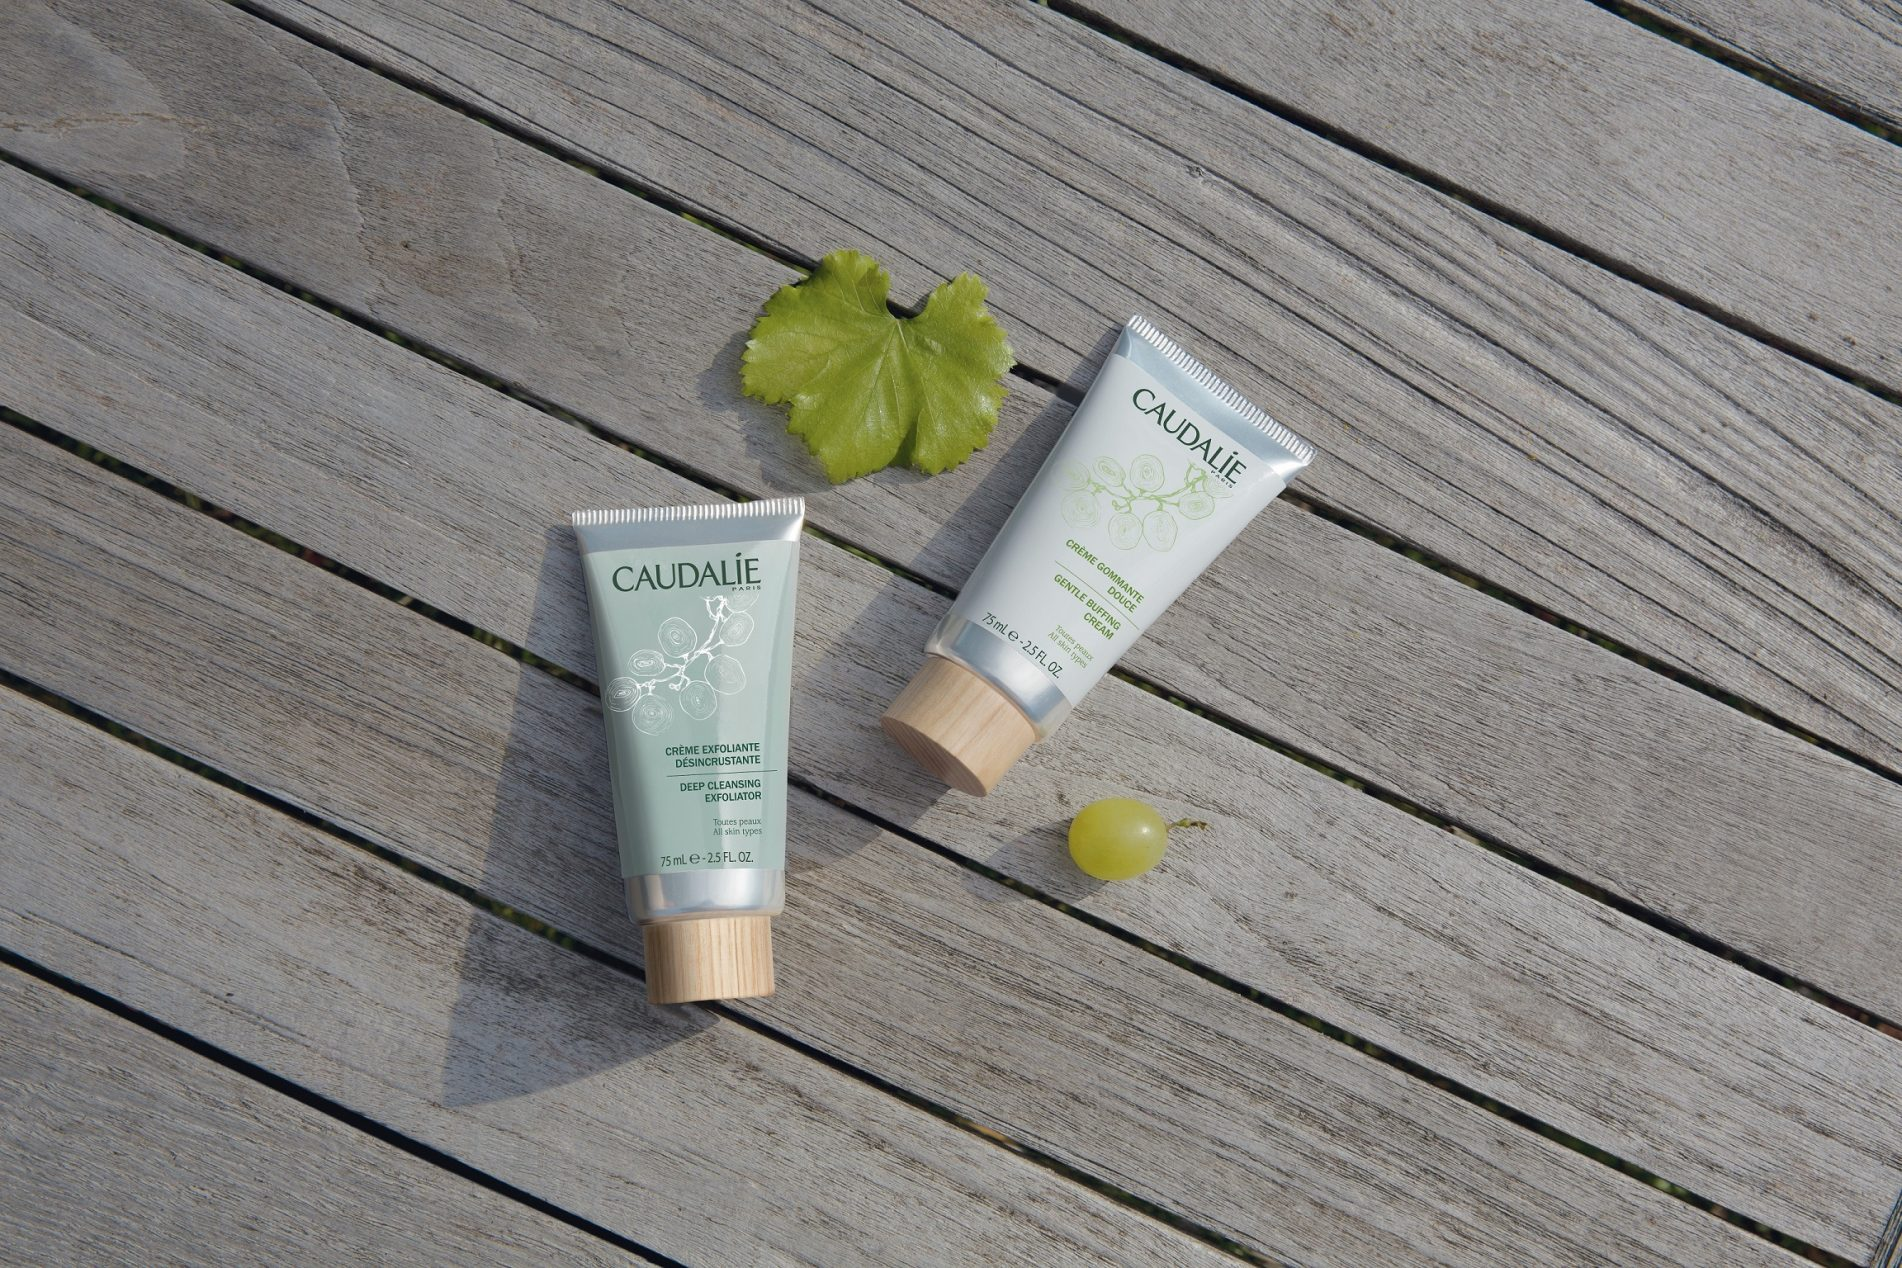 Caudalie at Frontlinestyle Hair and Beauty